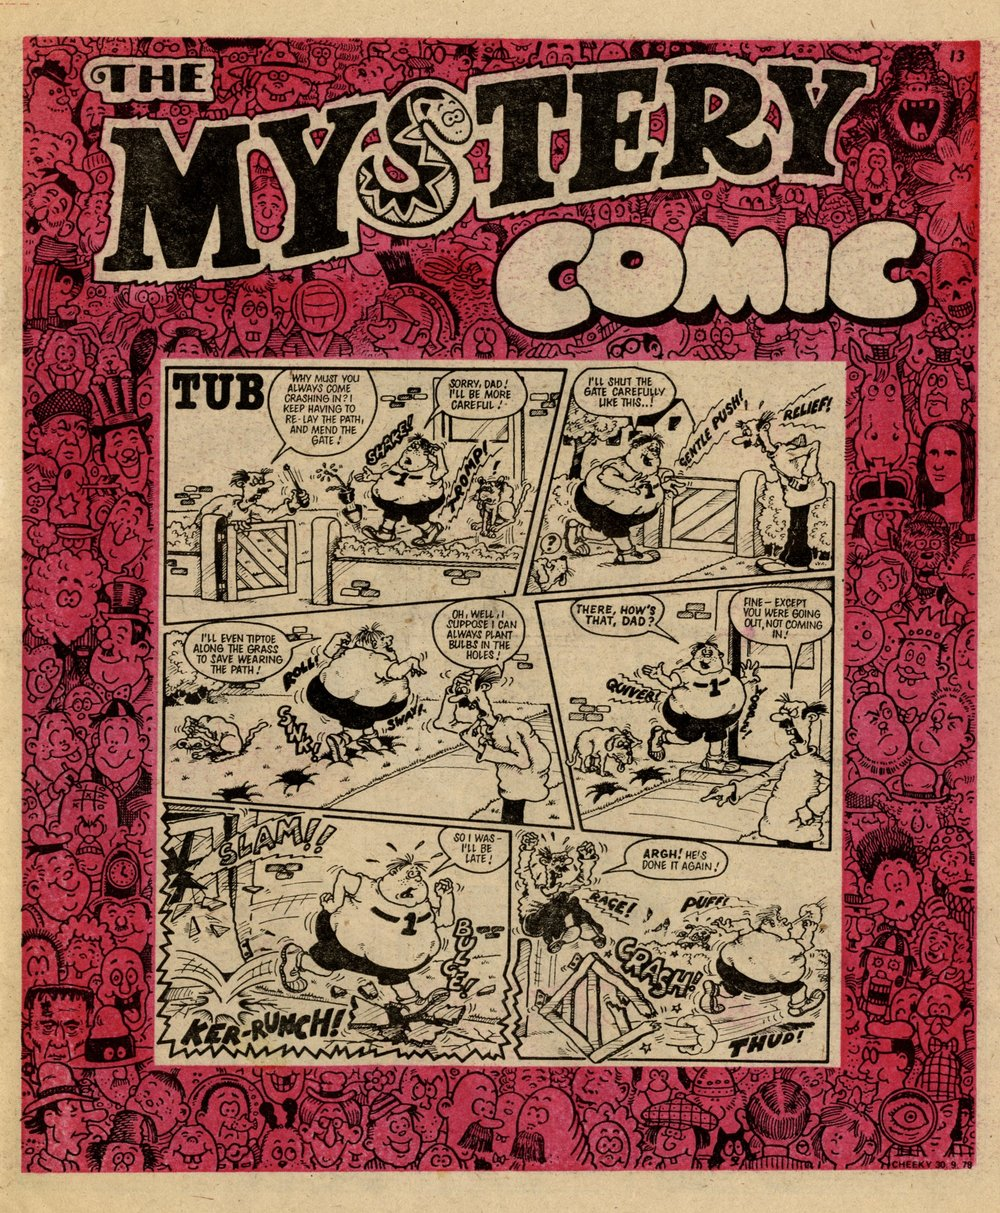 The Mystery Comic border: Ed McHenry (artist); Tub: Nigel Edwards (artist)